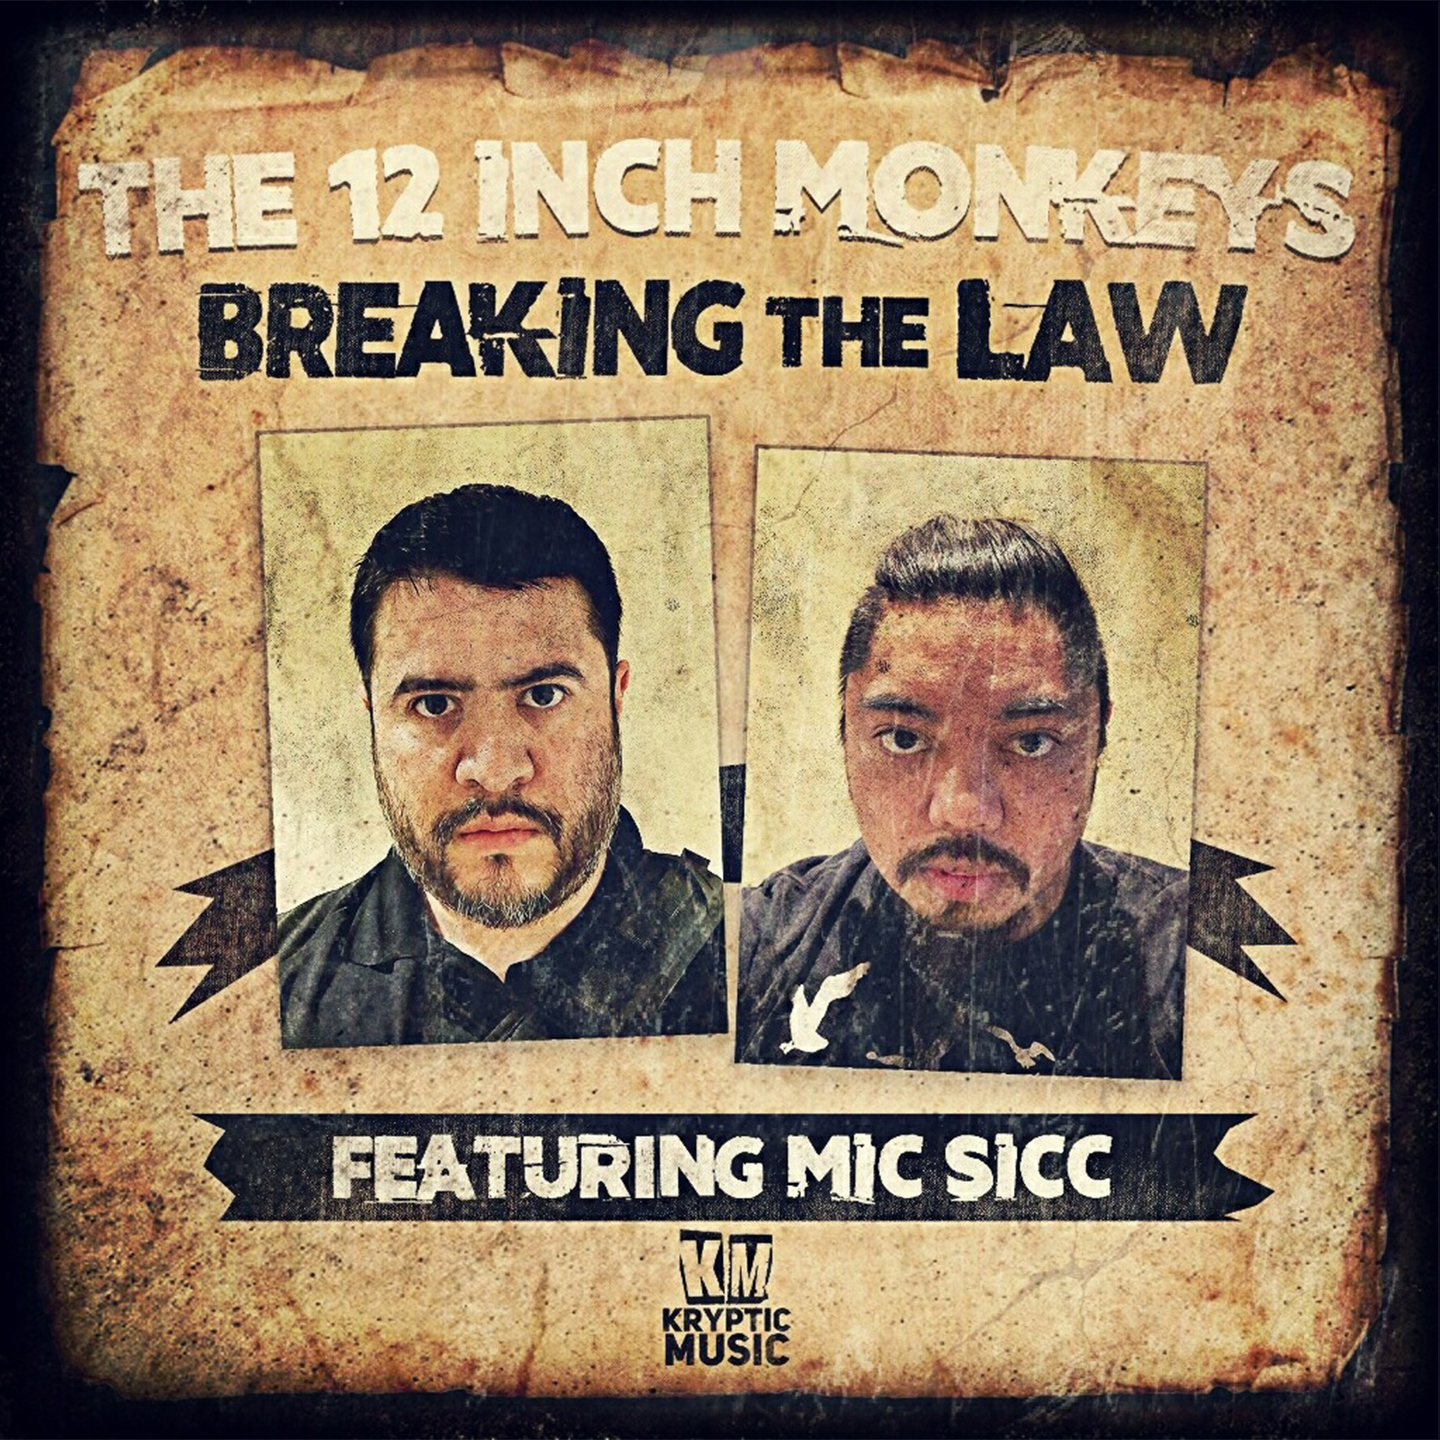 Breaking The Law Featuring Mic Sicc Image